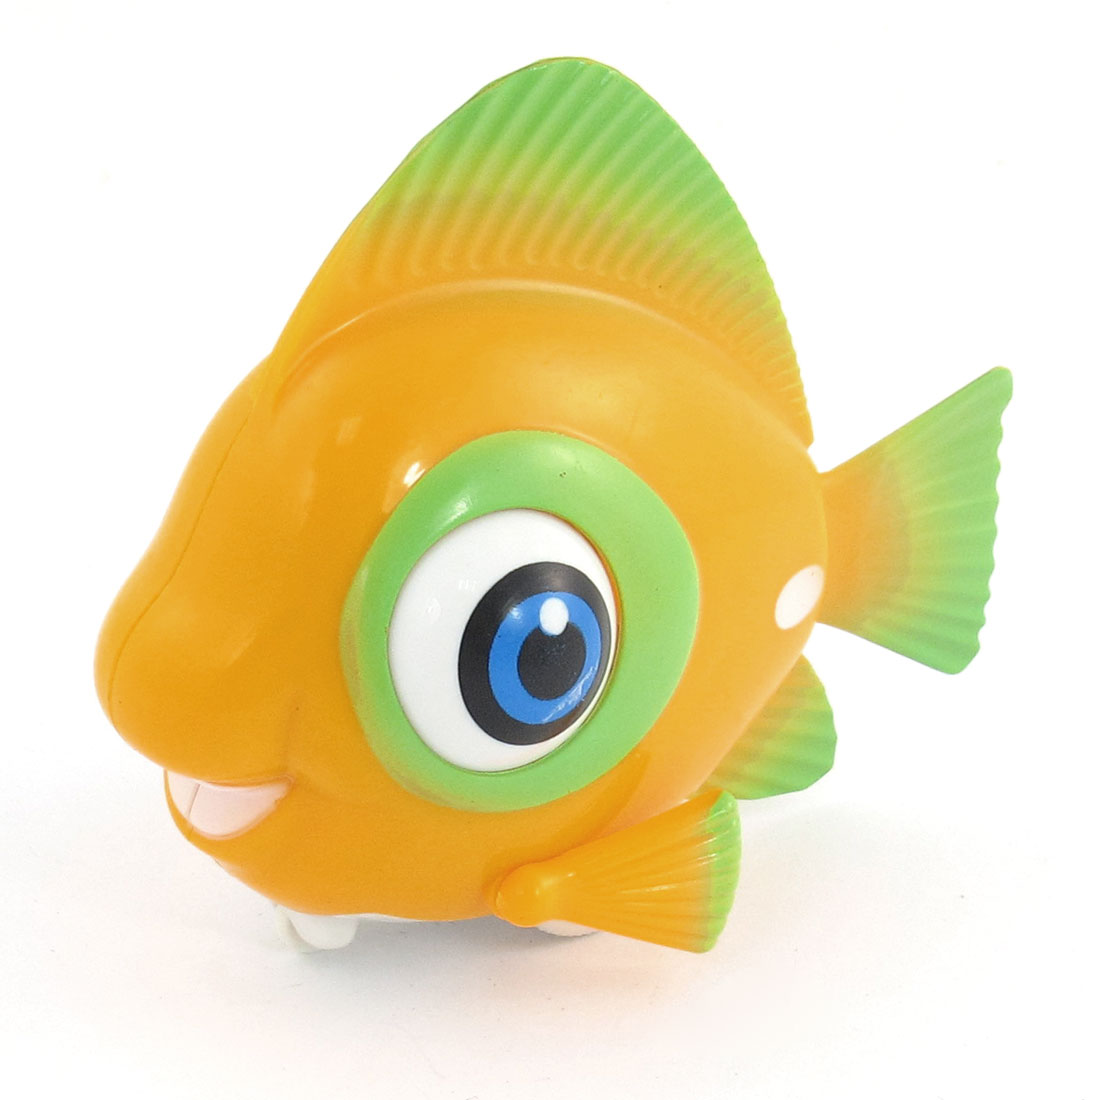 Clockwork Powered Wind Up Green Yellow Fish Shape Toy for Child Gift